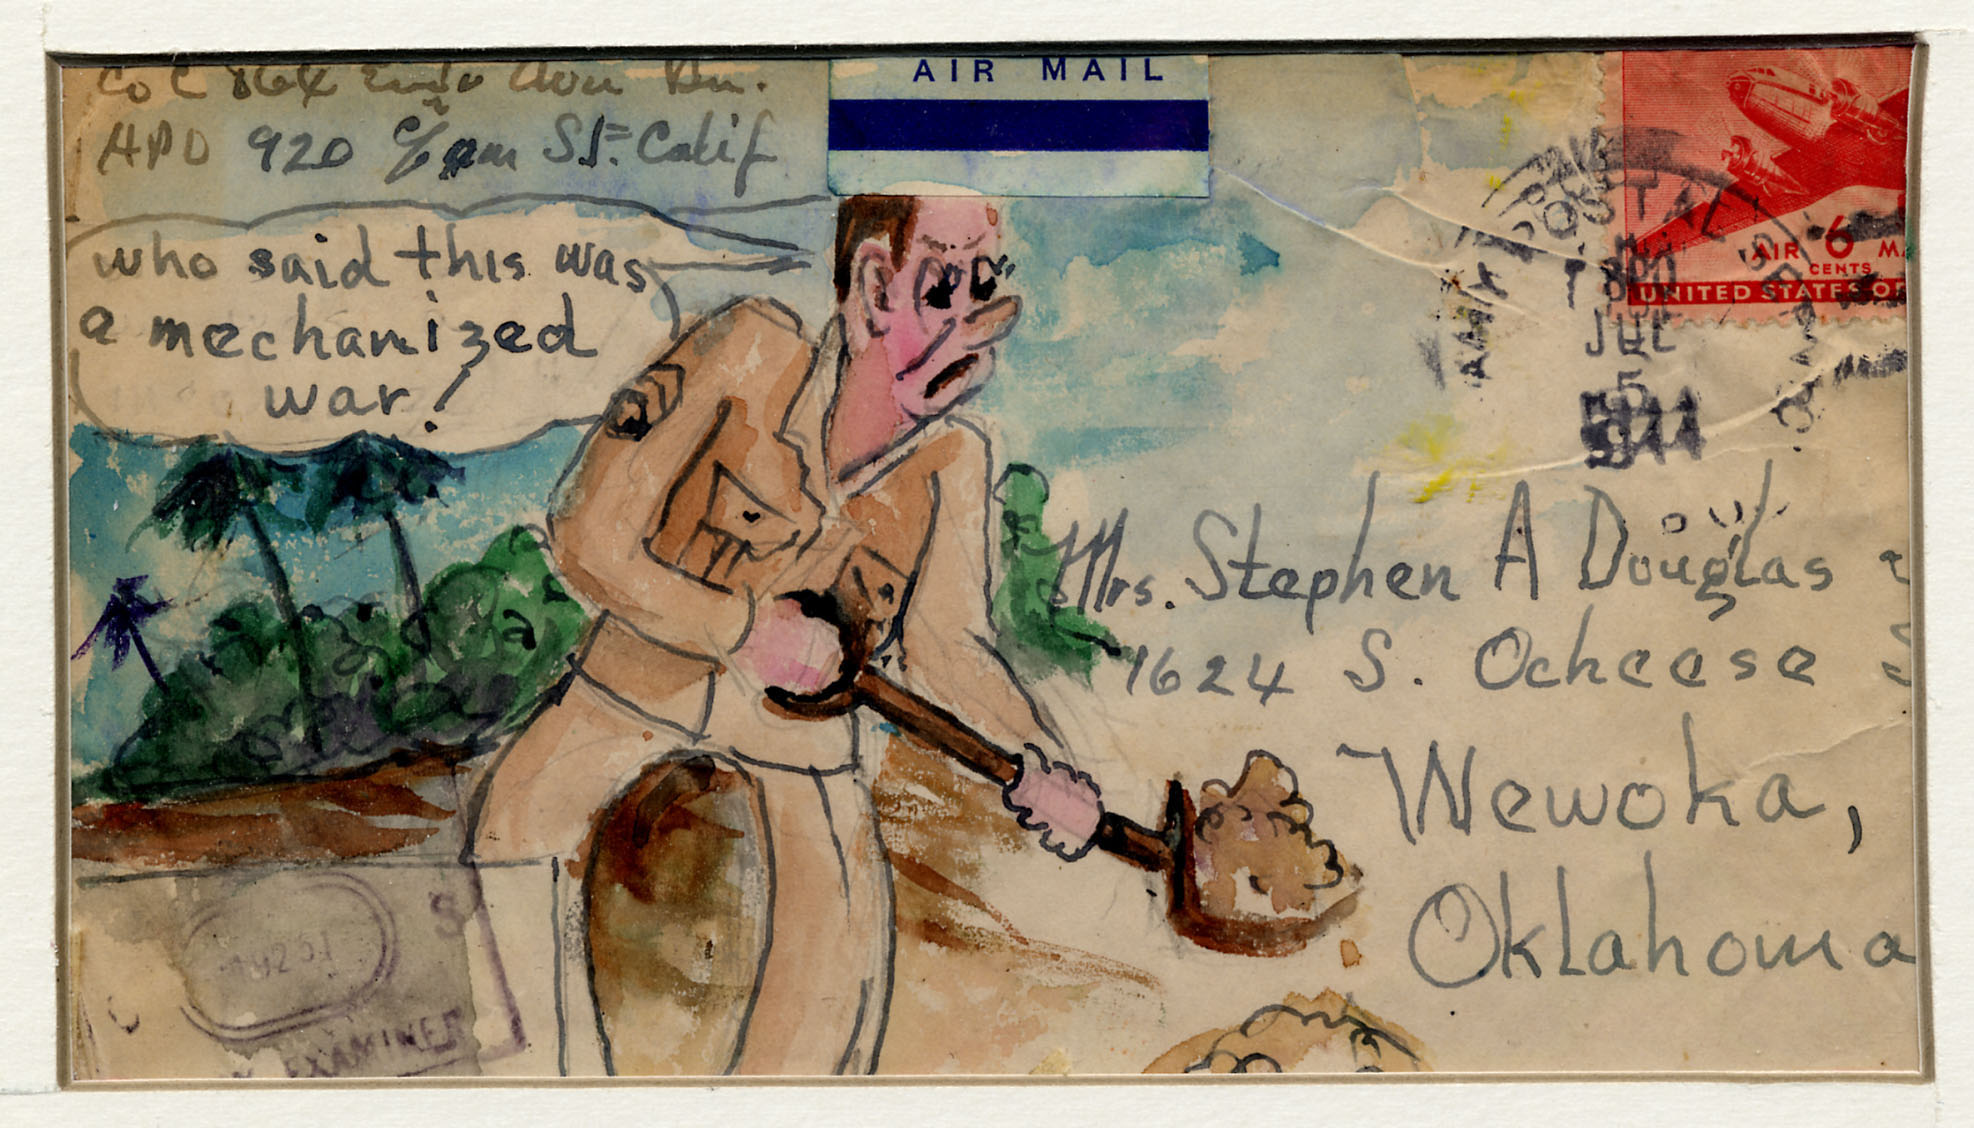 World War Two Envelope